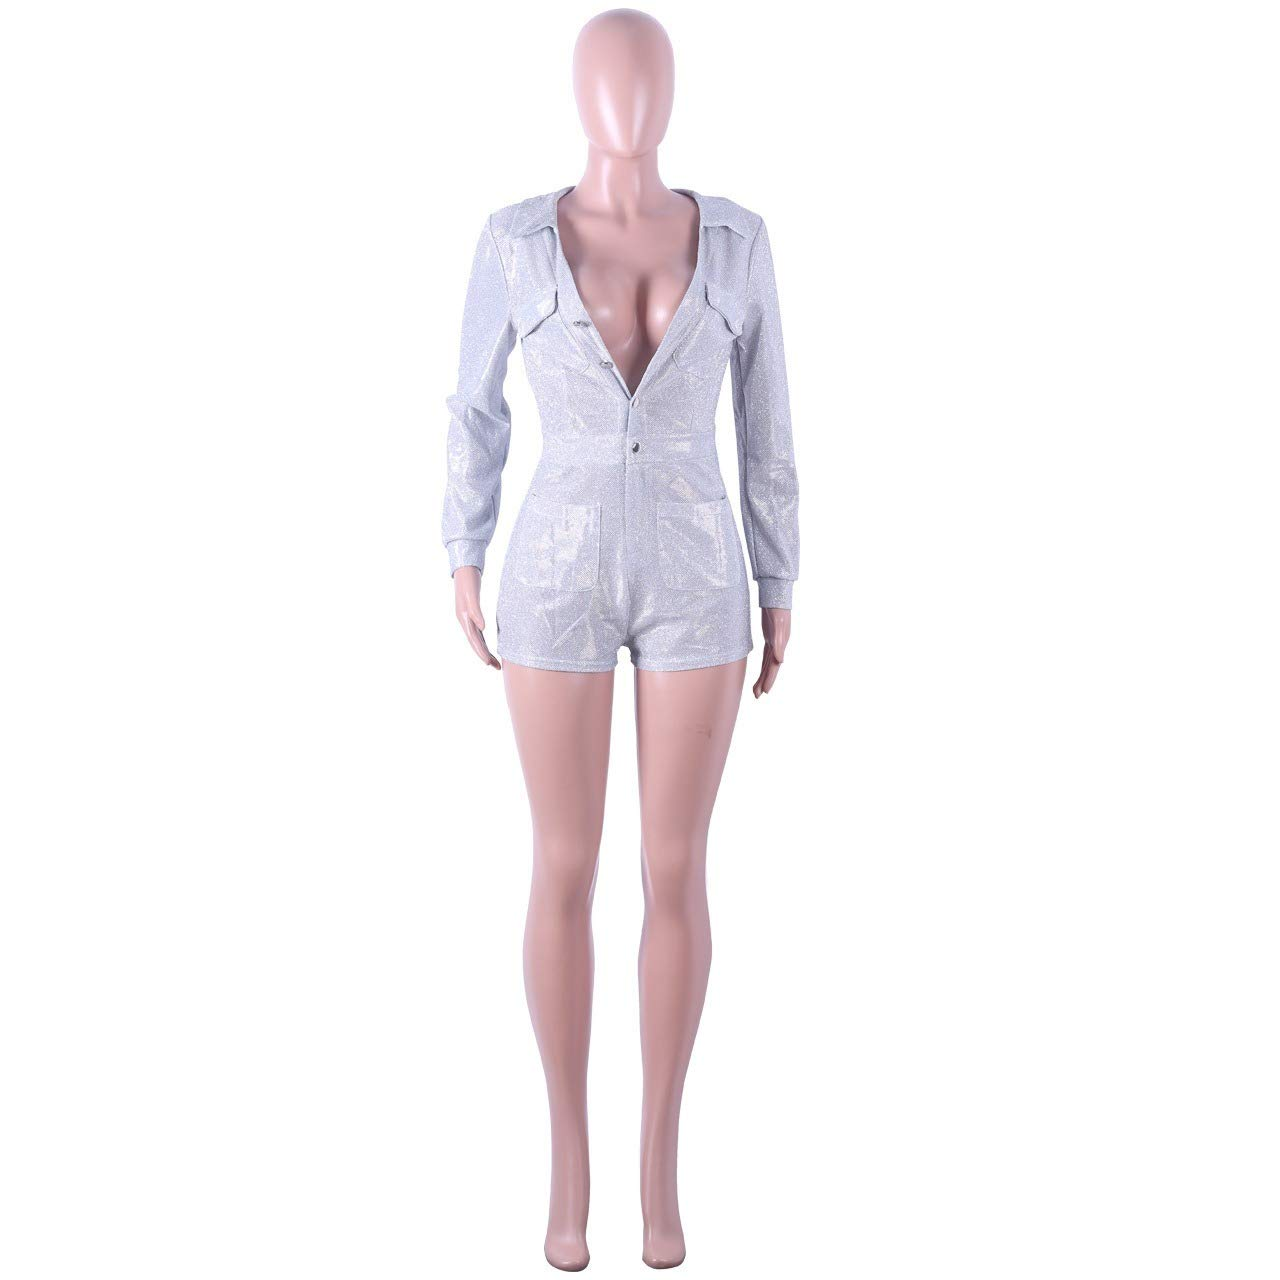 Doufine-women clothes Womens Cargo Shorts Long Sleeves Sequin V Neck Jumpuits and Rompers